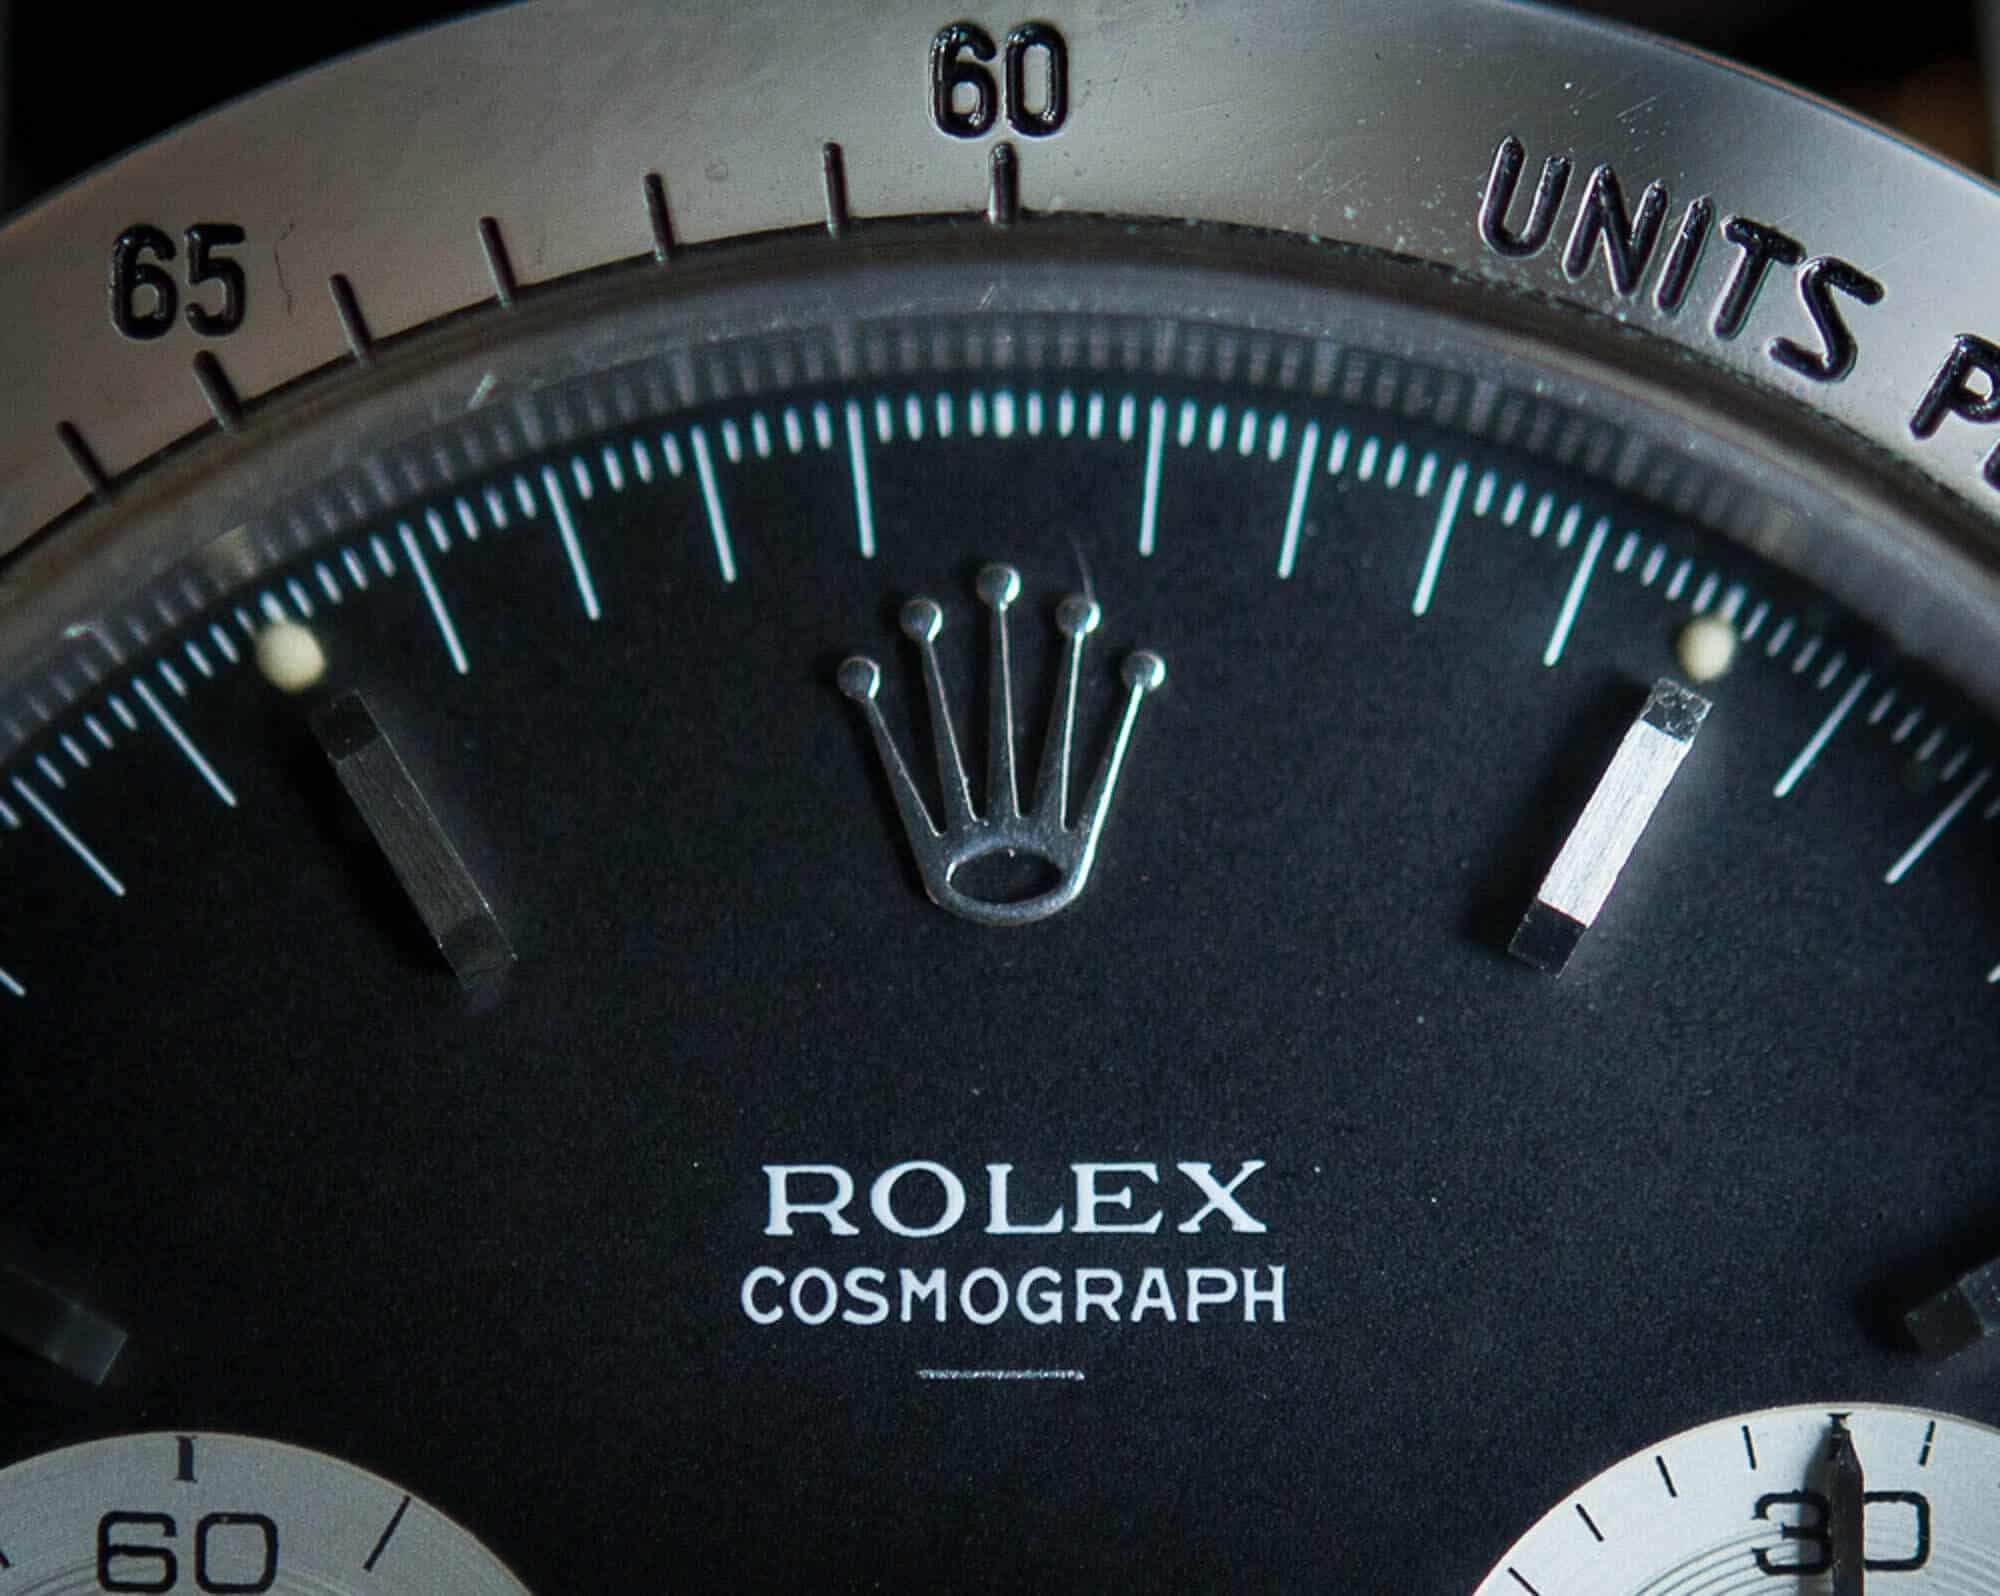 7 Reasons I'd Never Buy a Rolex (and 1 That I Might) – Watch Buying Advice for Gentlemen